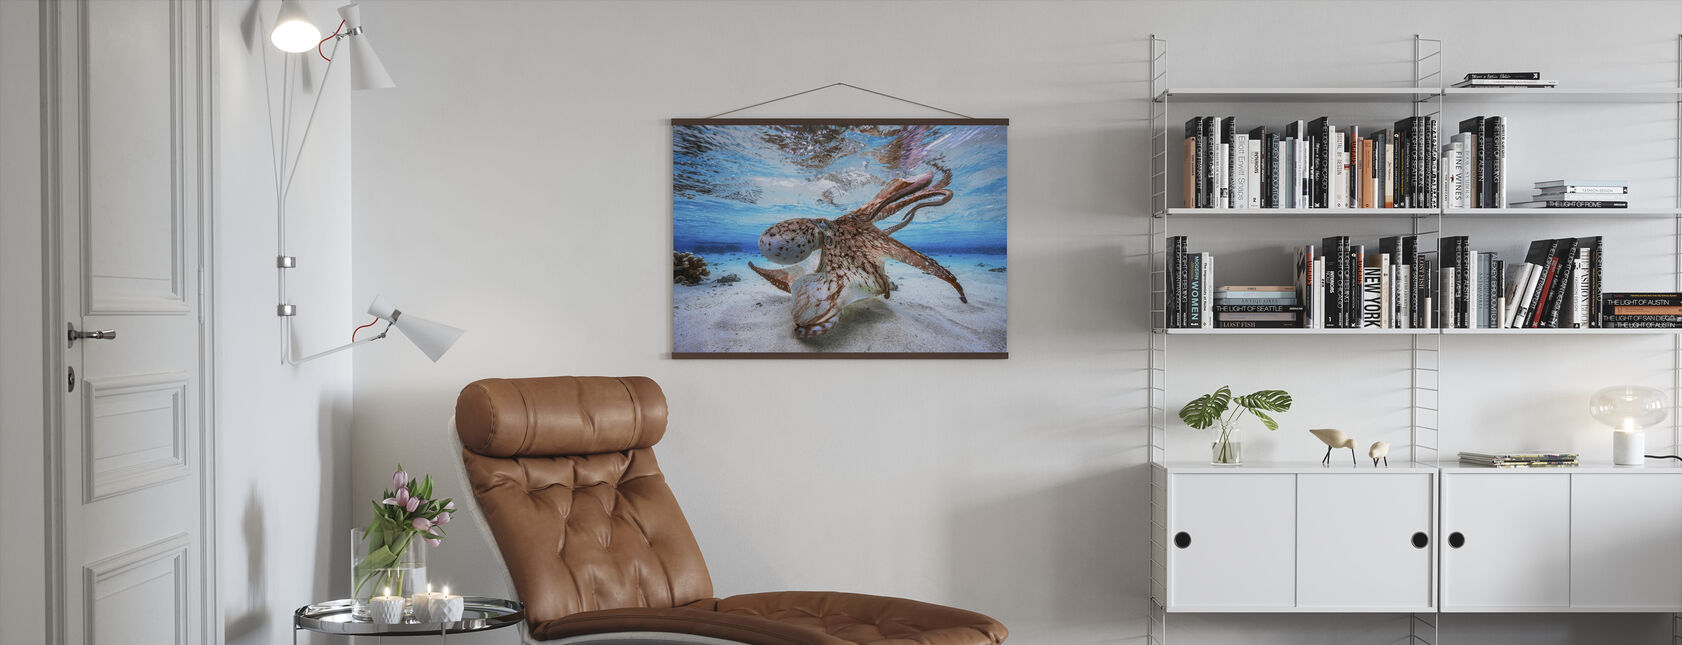 Dancing Octopus - Poster - Living Room